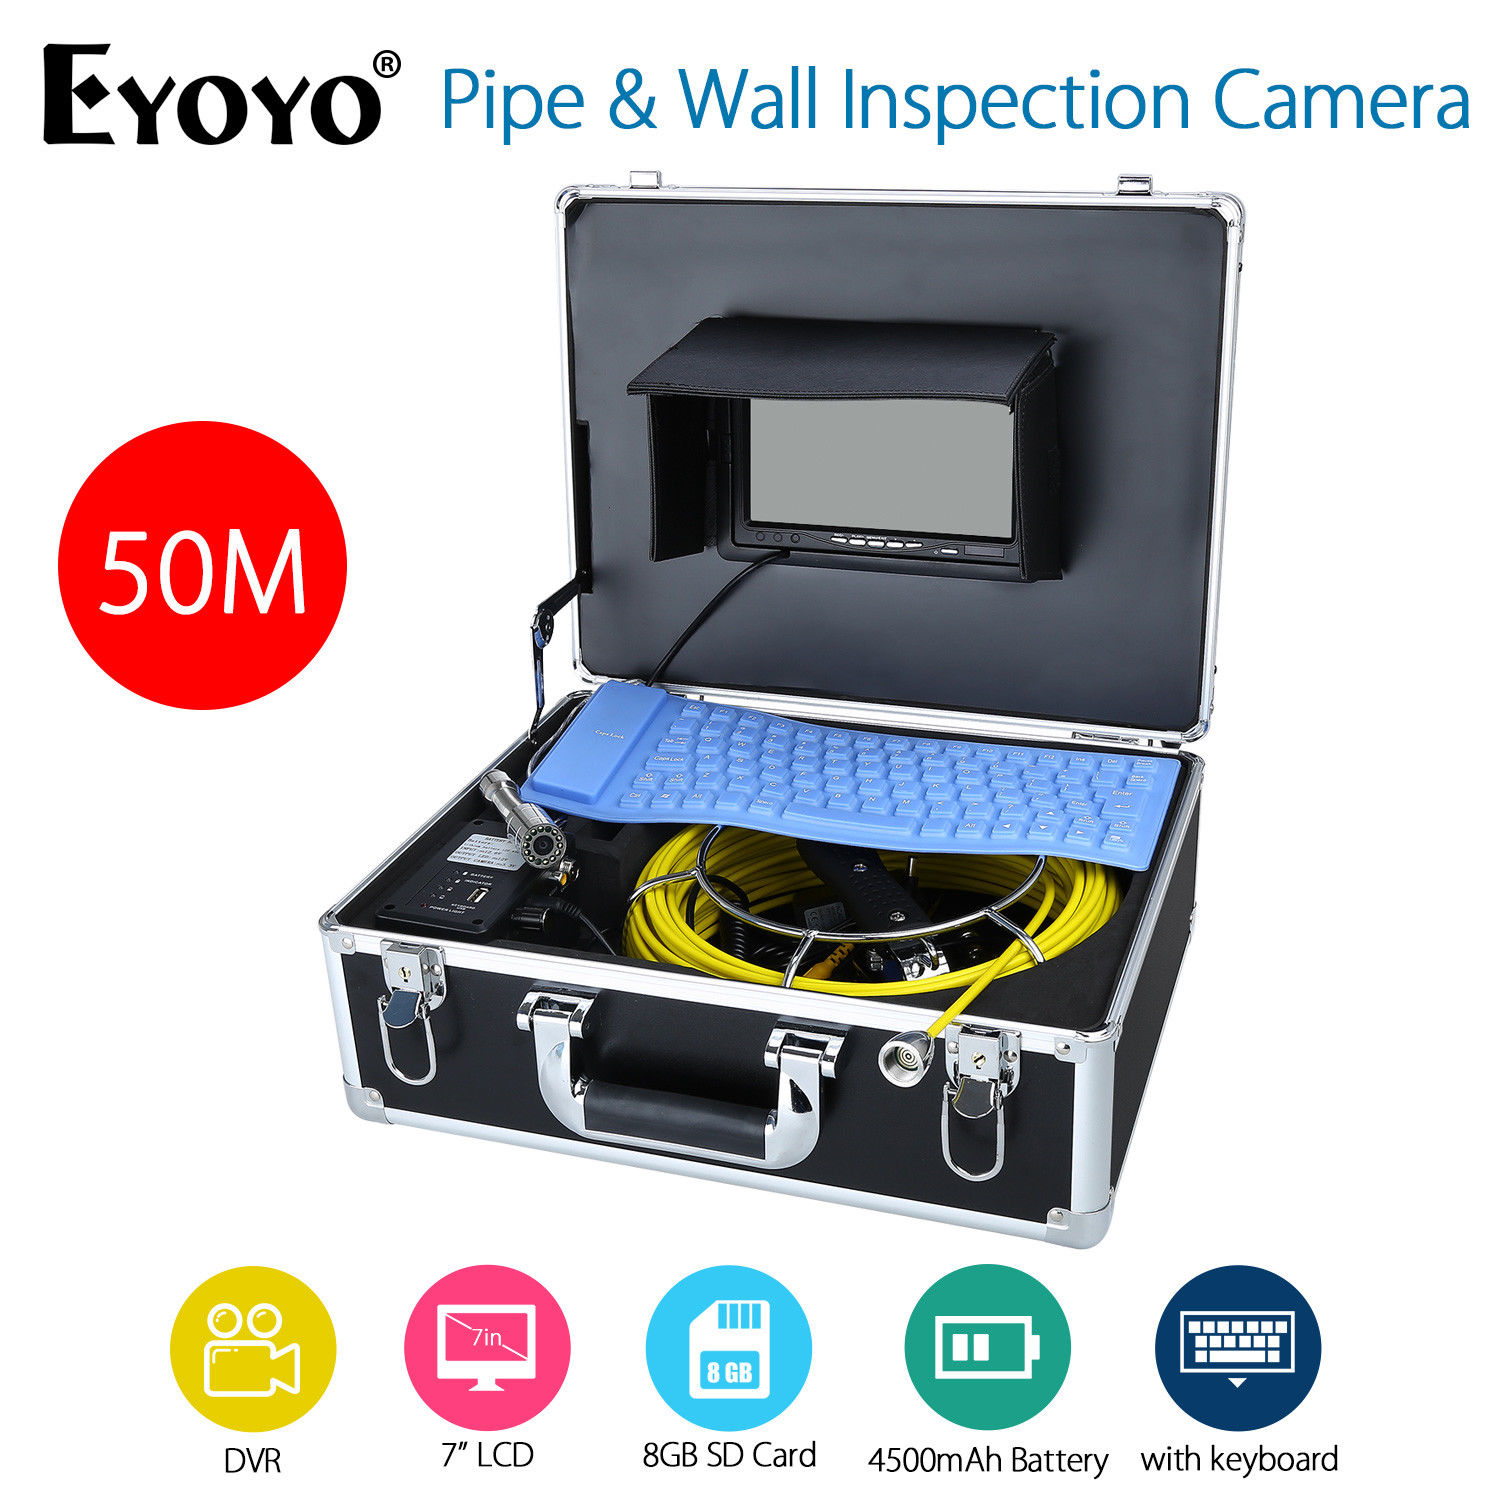 Eyoyo 50M 7 LCD Pipe Wall Inspection Camera HD 1000TVL DVR Endoscope Snake Sewer Cam Video Recording With Portable Keyboard